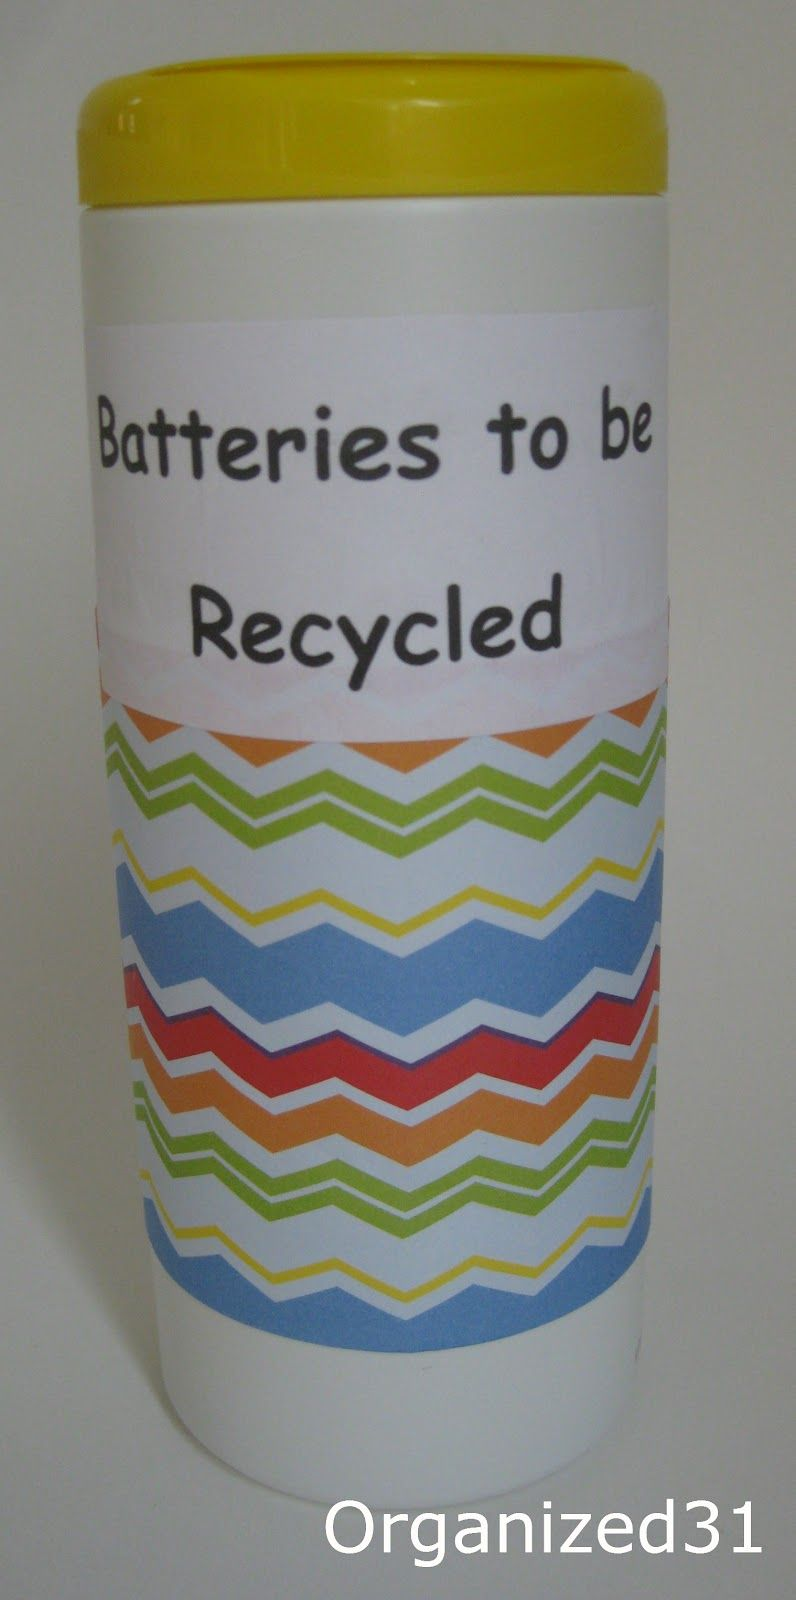 Clorox Wipe Bottle repurposed to Store Batteries to Be